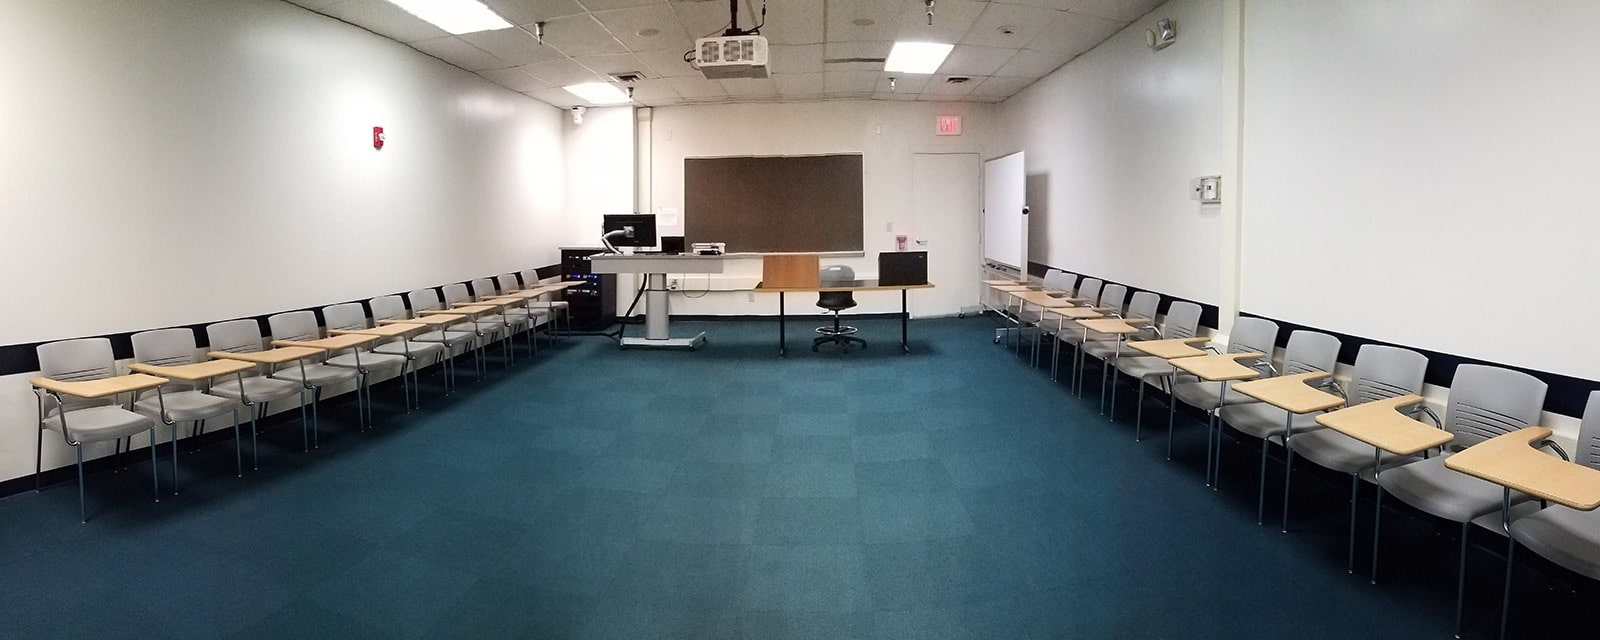 Panorama MSQ room 2028B from back of room to front of room, movable chairs, teaching station front right